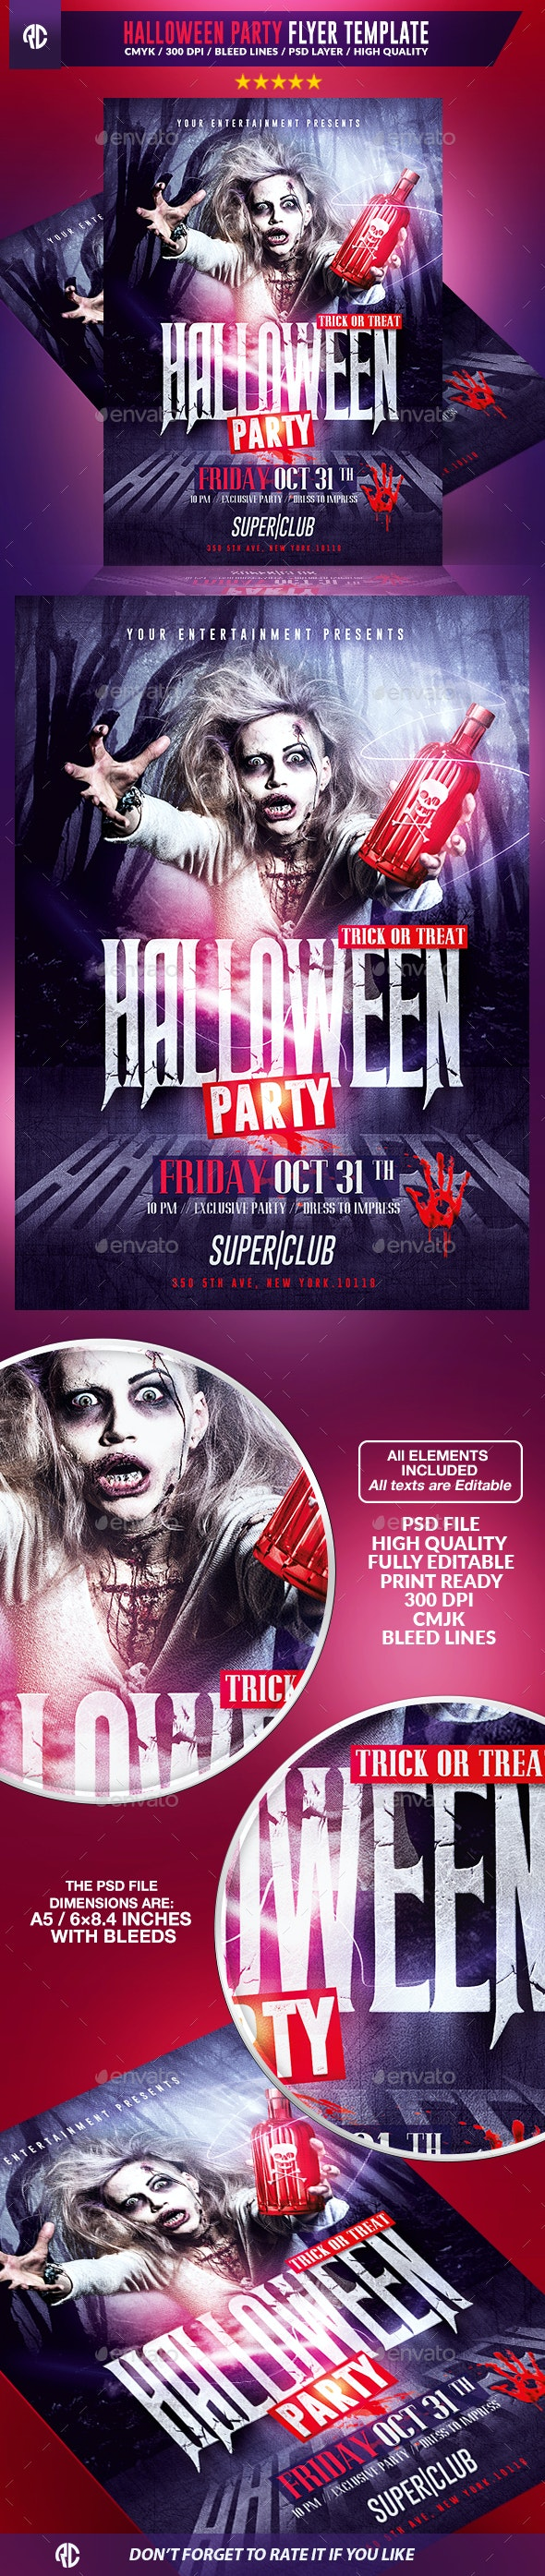 Halloween Party | Psd Flyer Template - Events Flyers